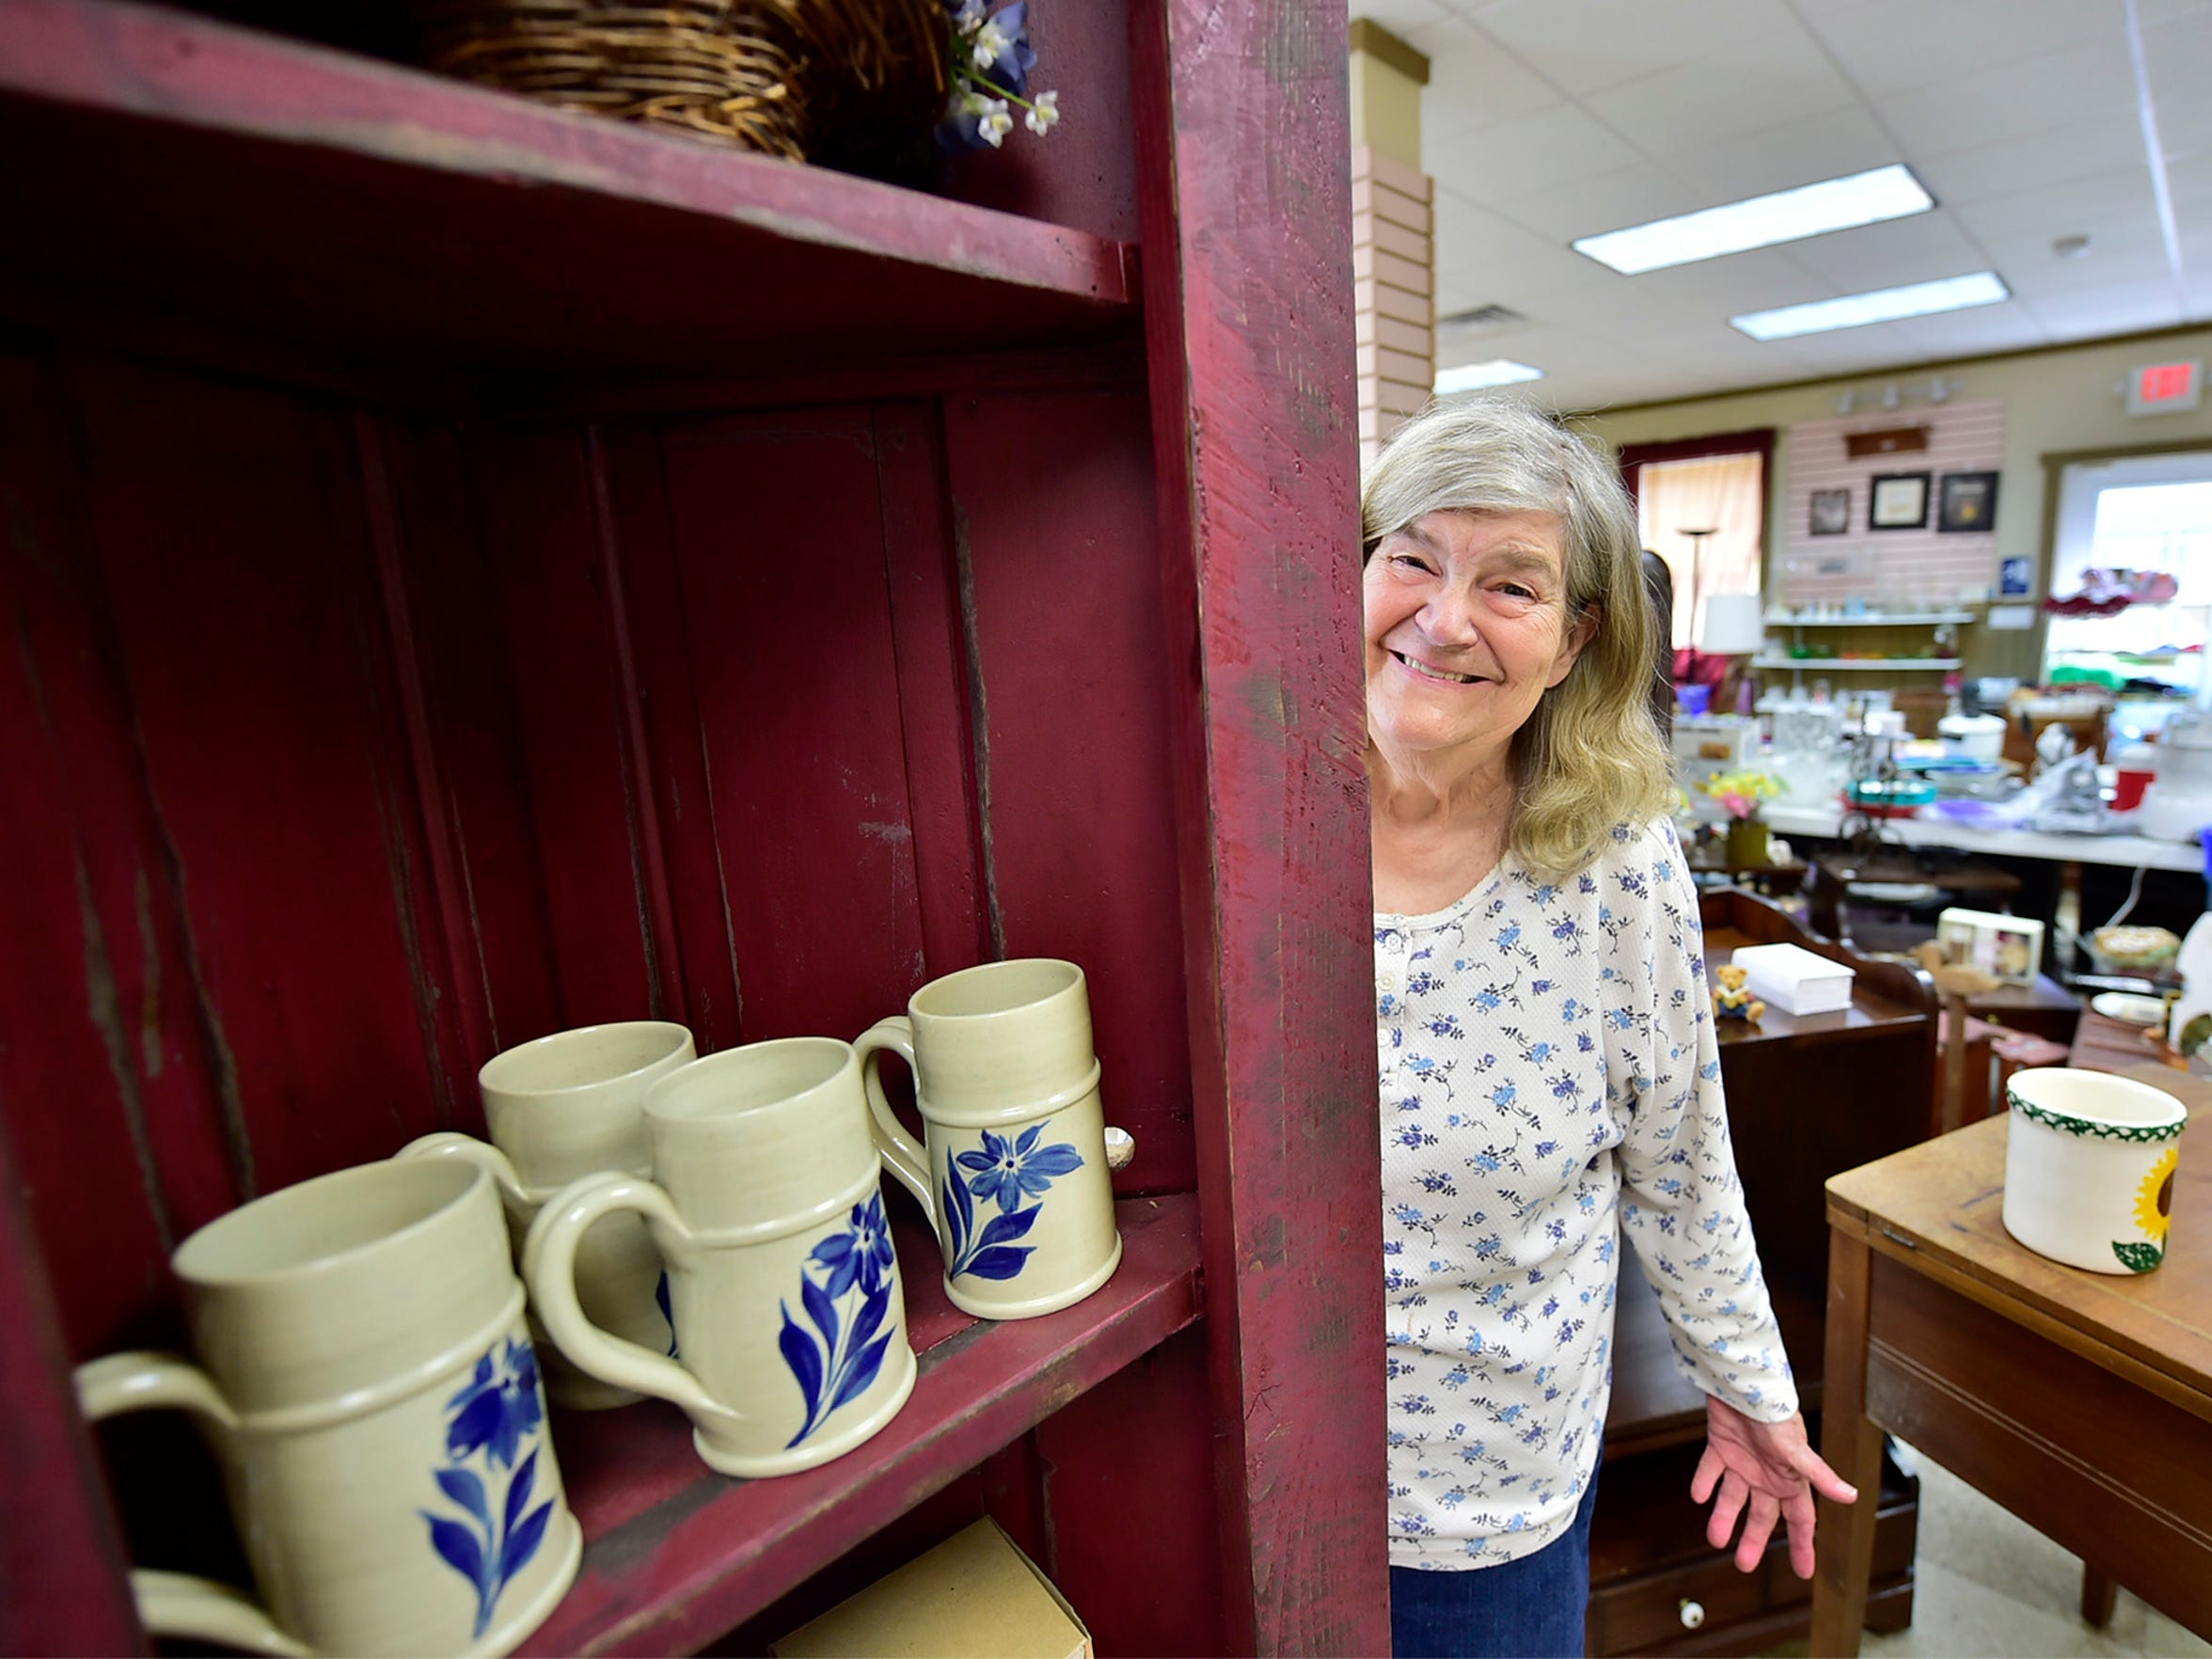 Ruth Mowen is the owner of Upscale Consignment shop, located at 24 W. Franklin Street, Greencastle.